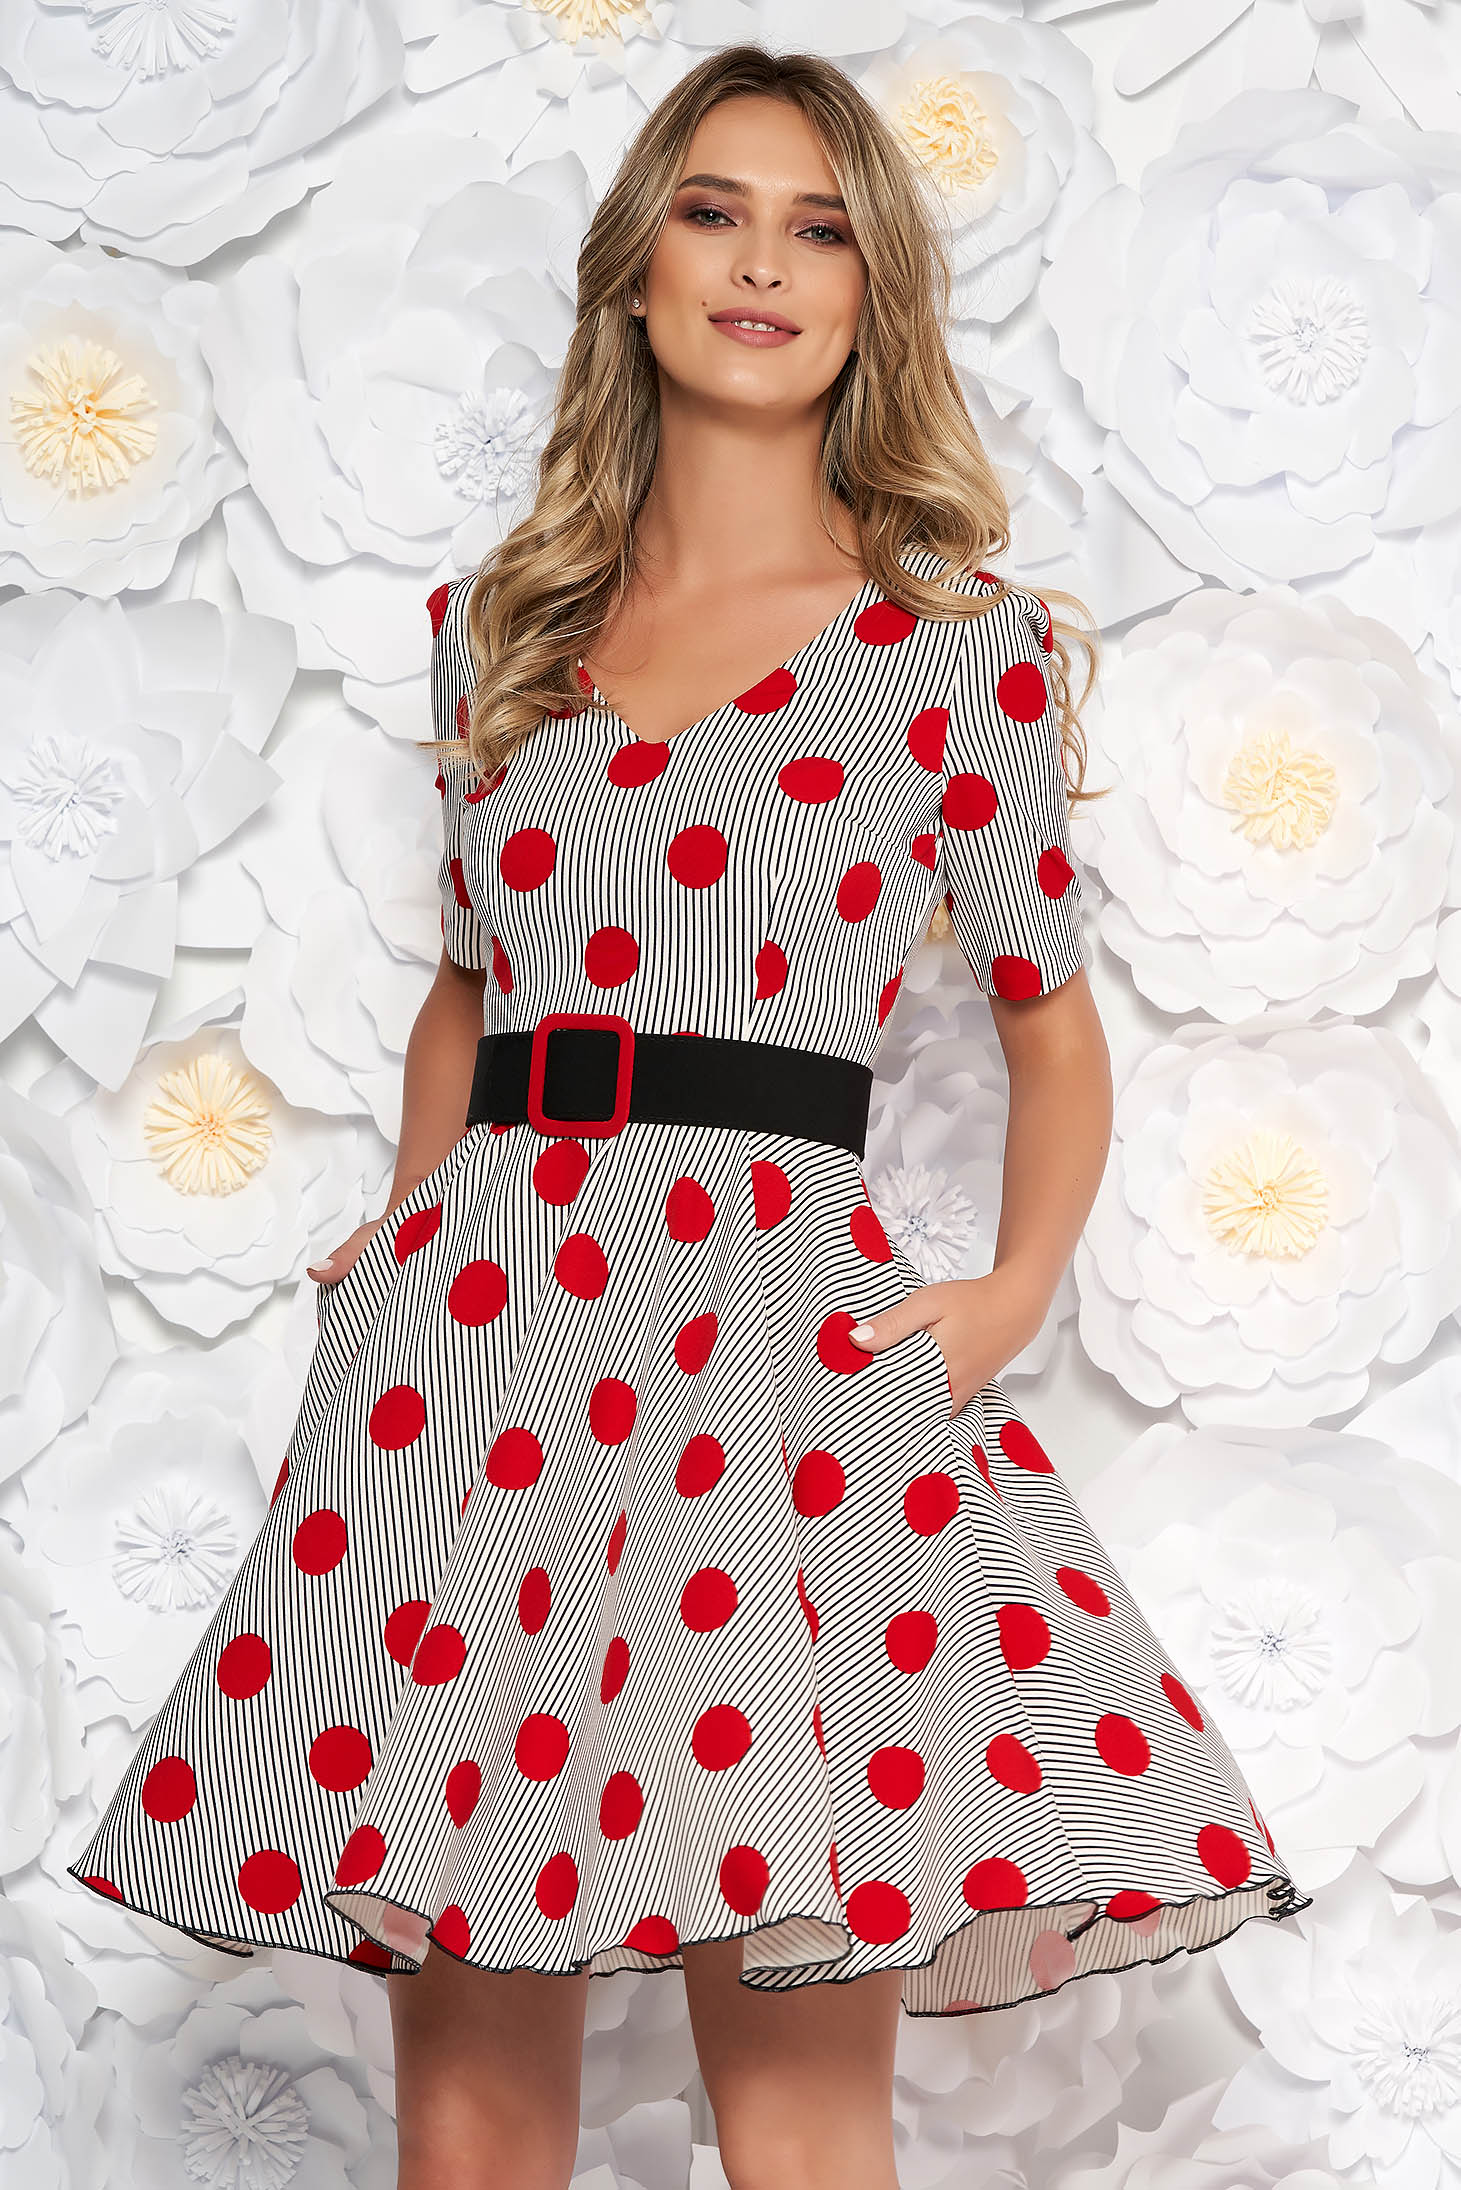 White dress short cut daily cloche dots print with v-neckline accessorized with belt